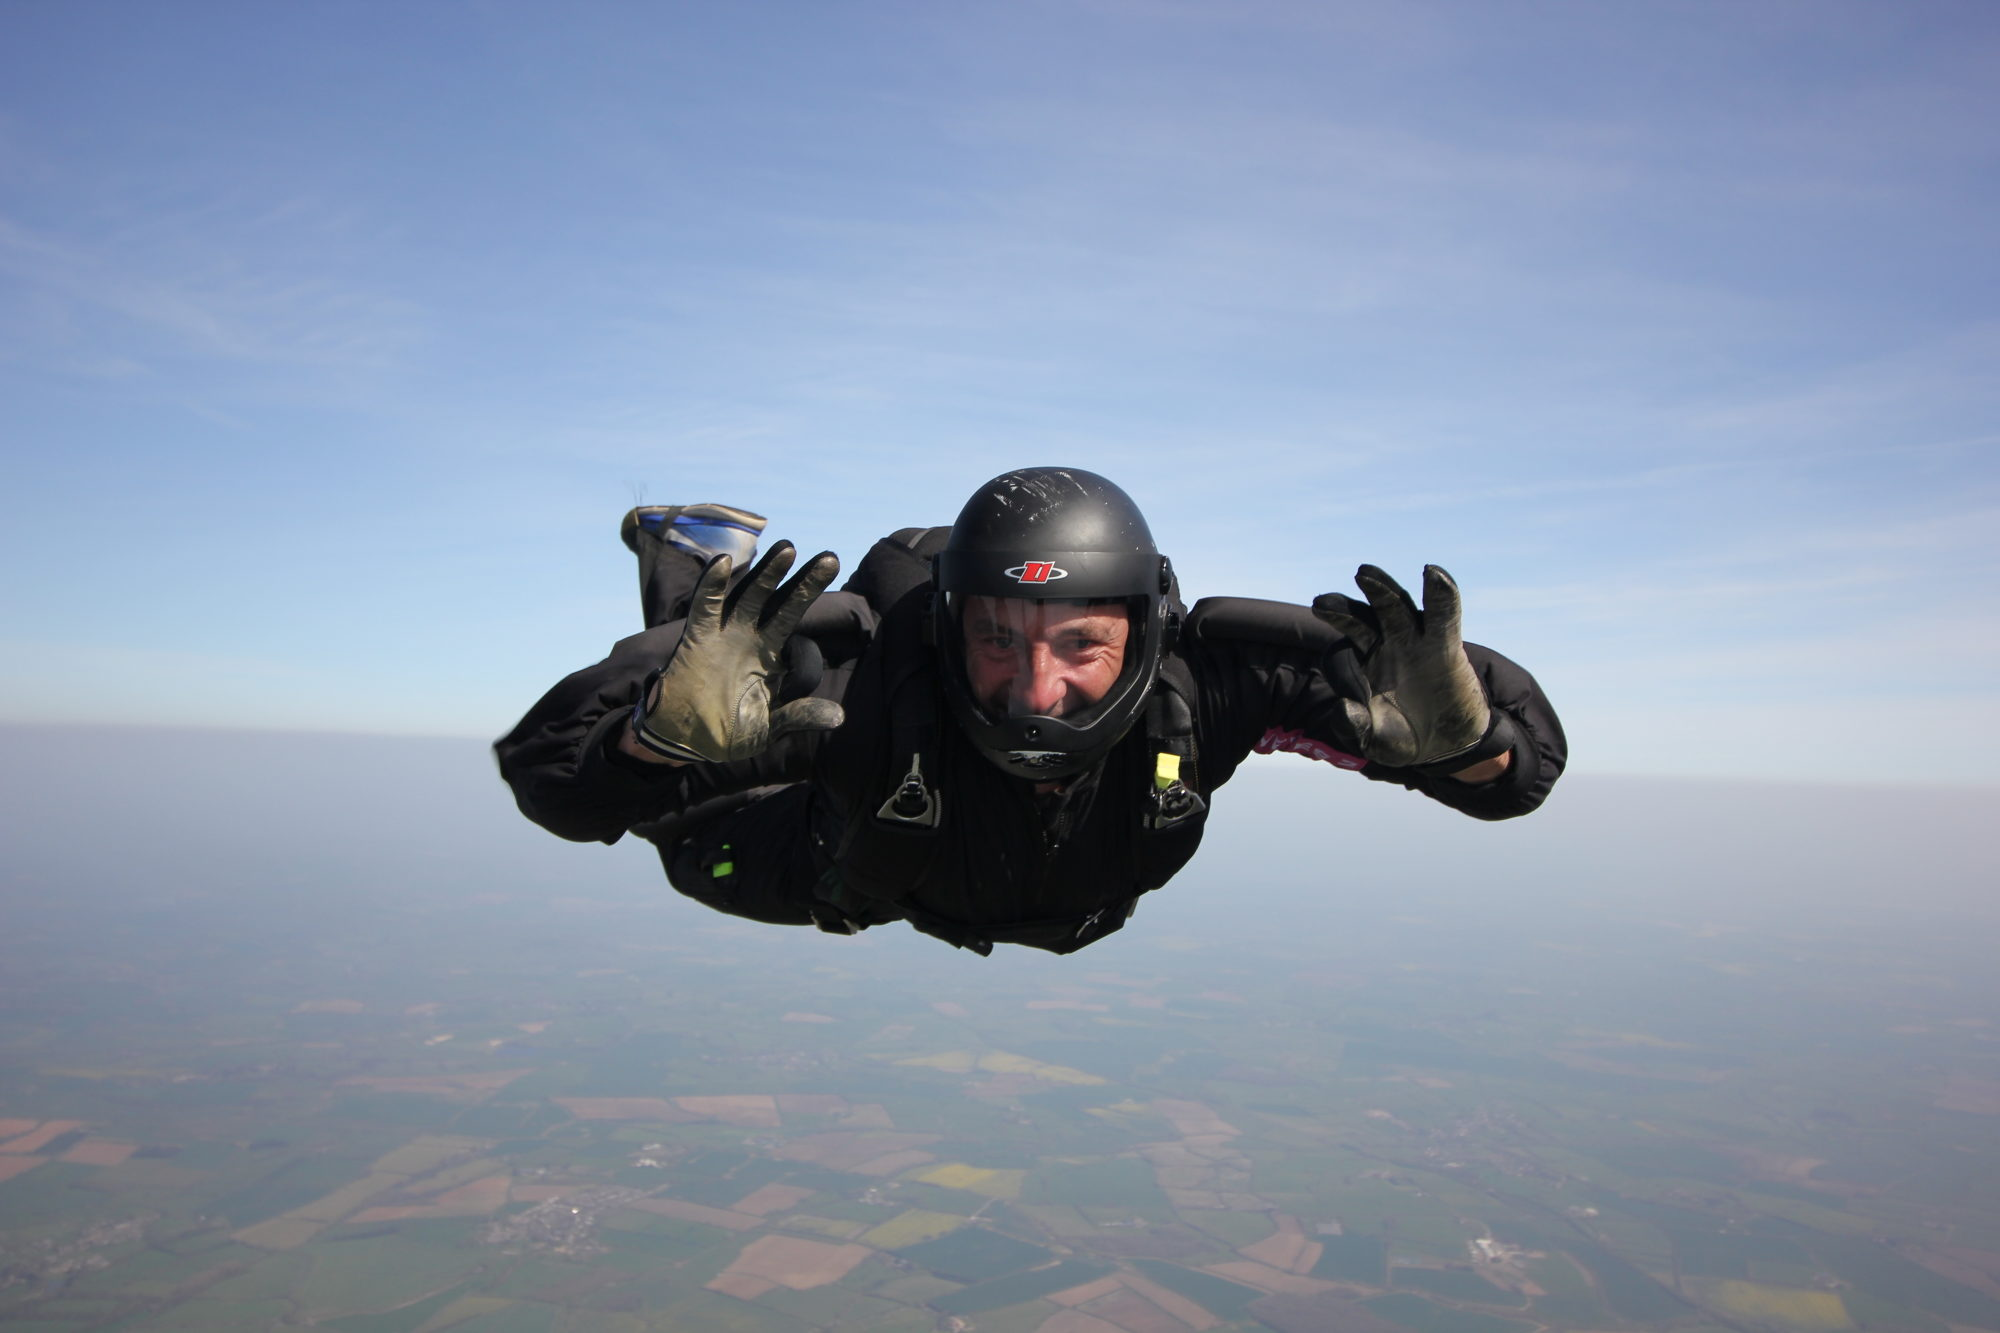 Skydive rehearsals